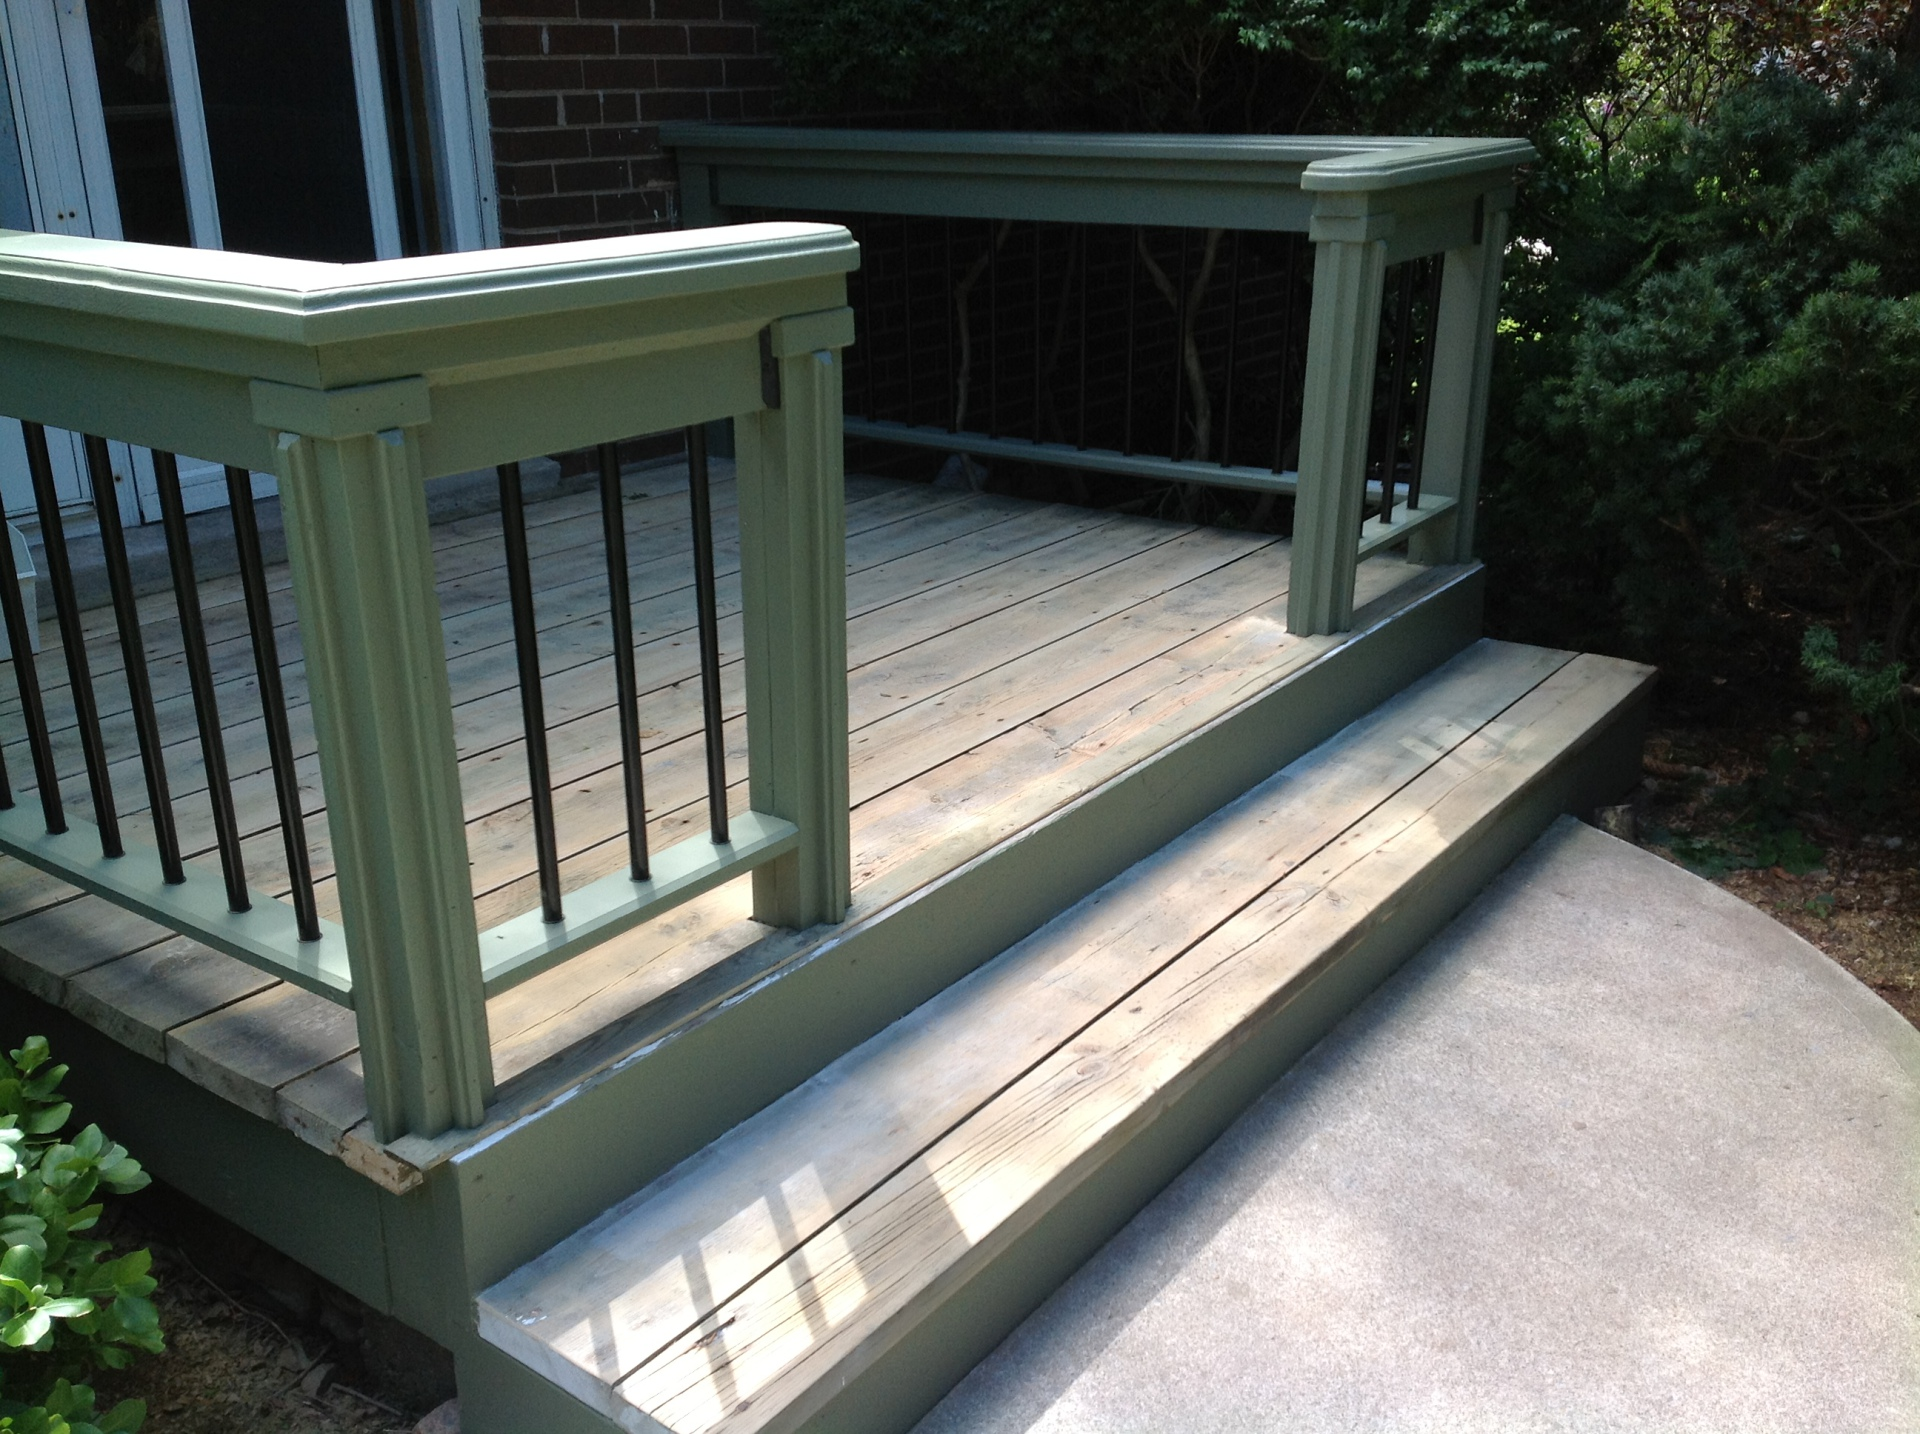 Restored deck with painted handrail and metal spindles